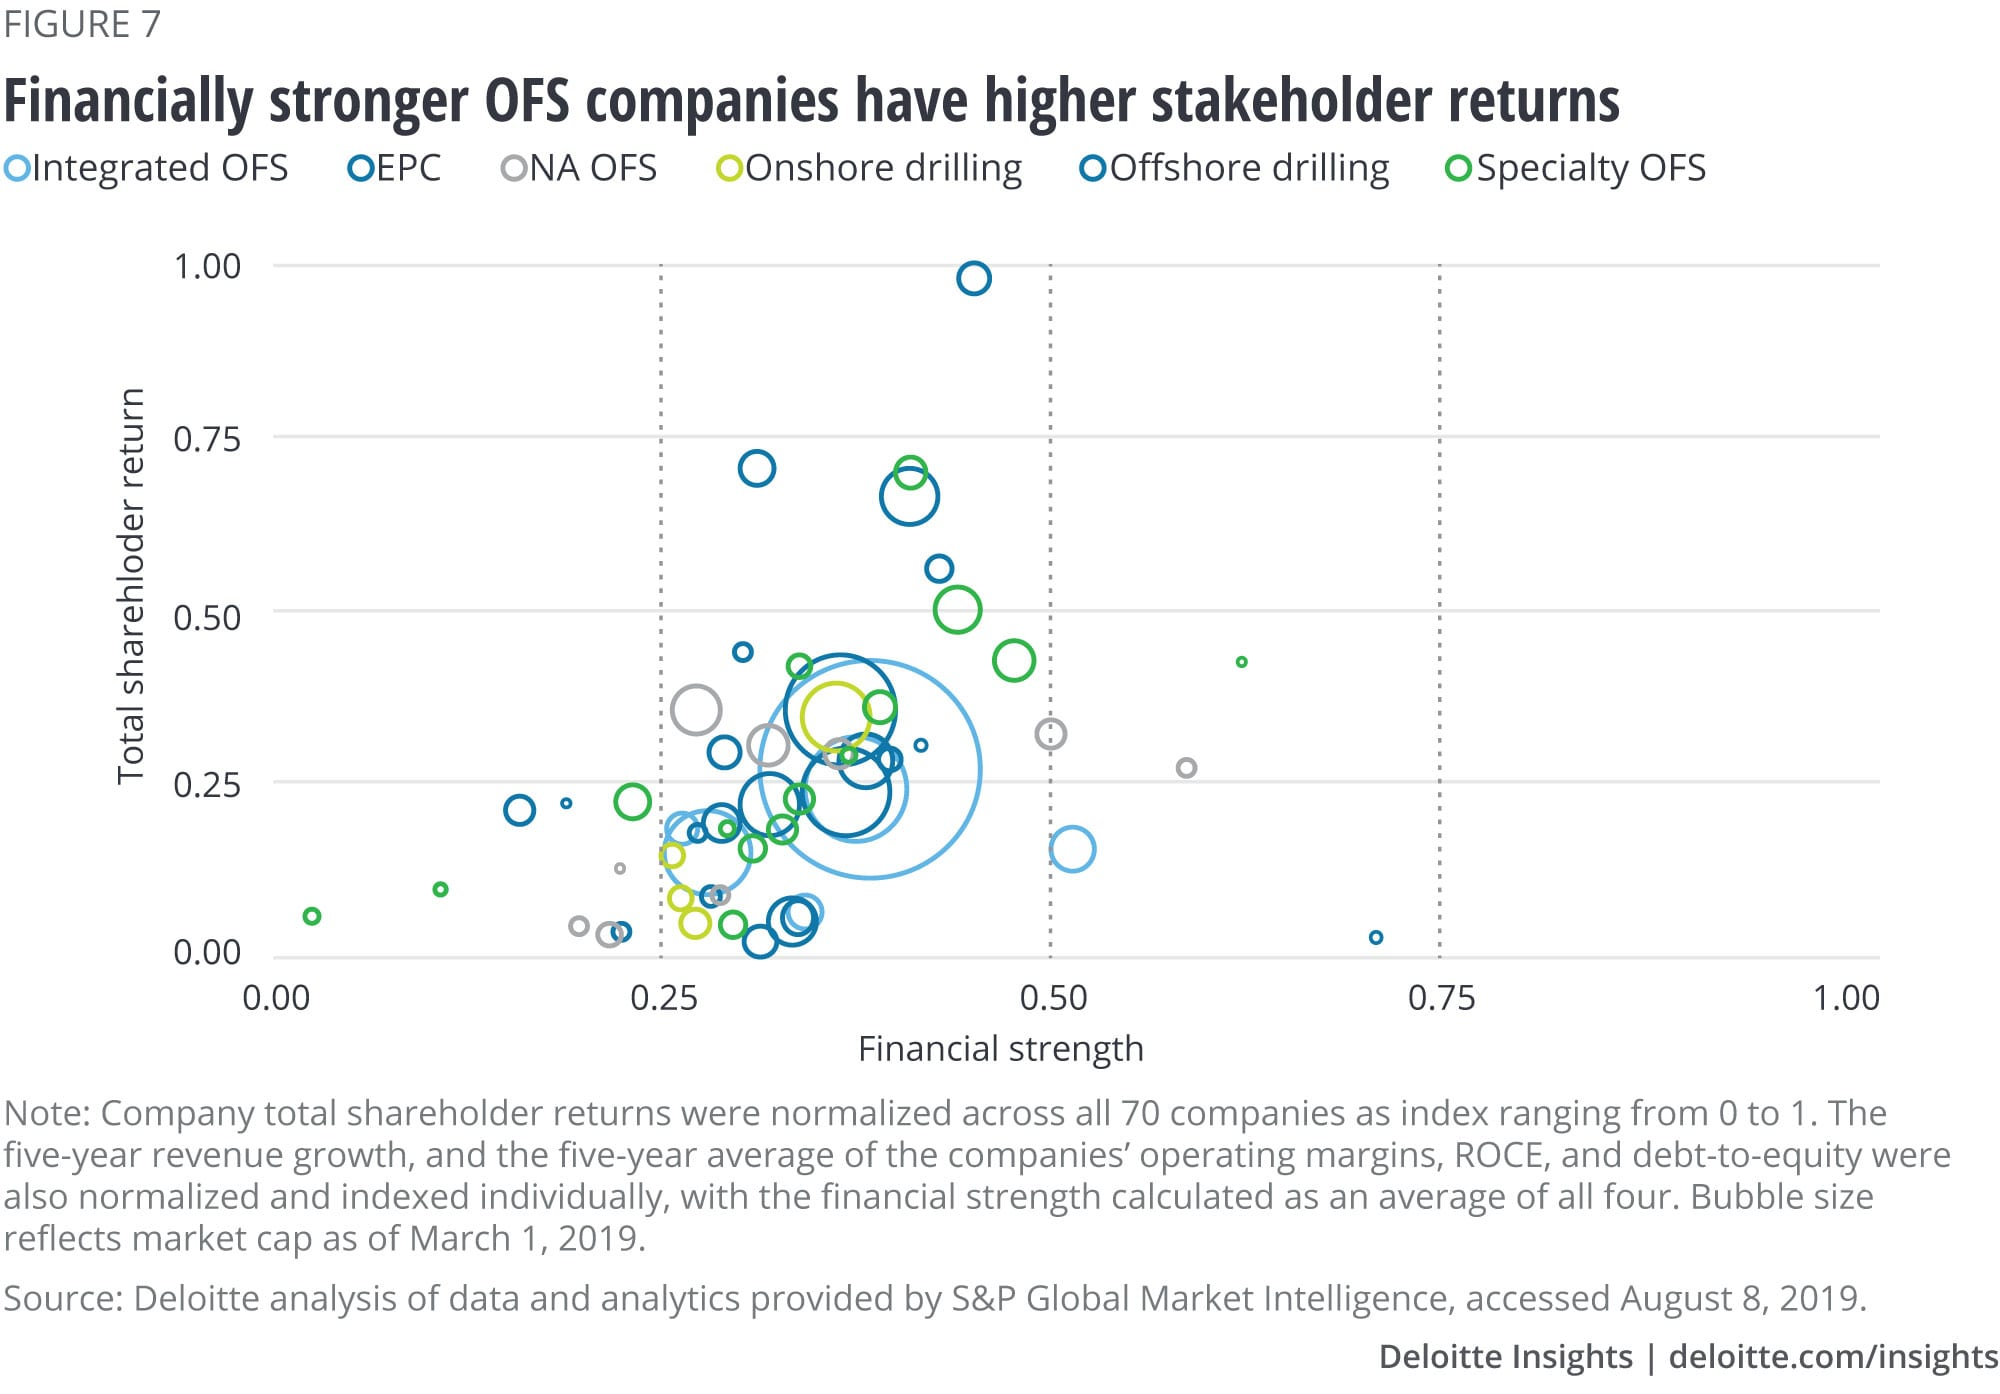 Financially stronger OFS companies have higher shareholder returns